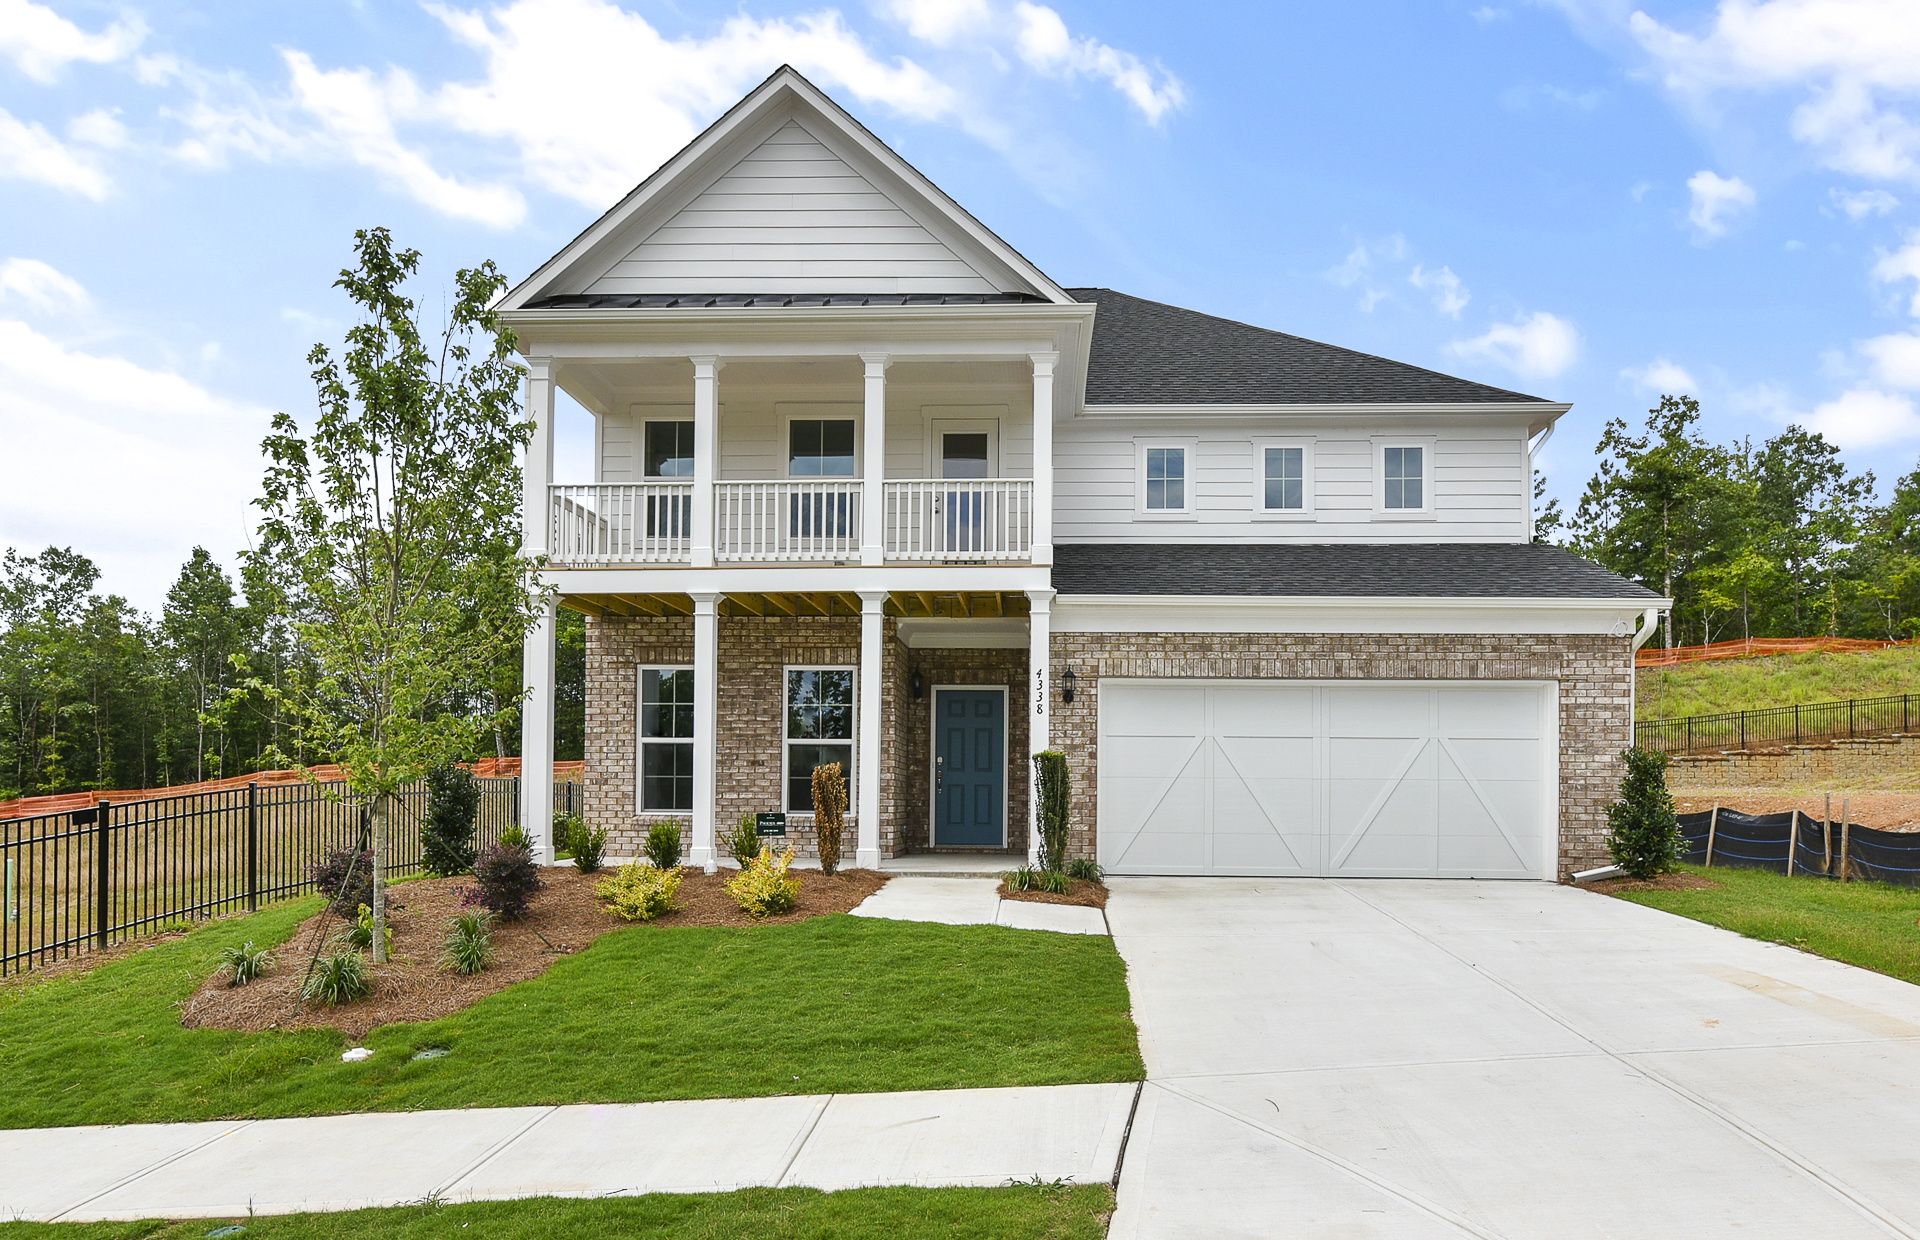 Pulte Homes Now Selling Single-Family Homes and Townhomes at Northmark in Georgia